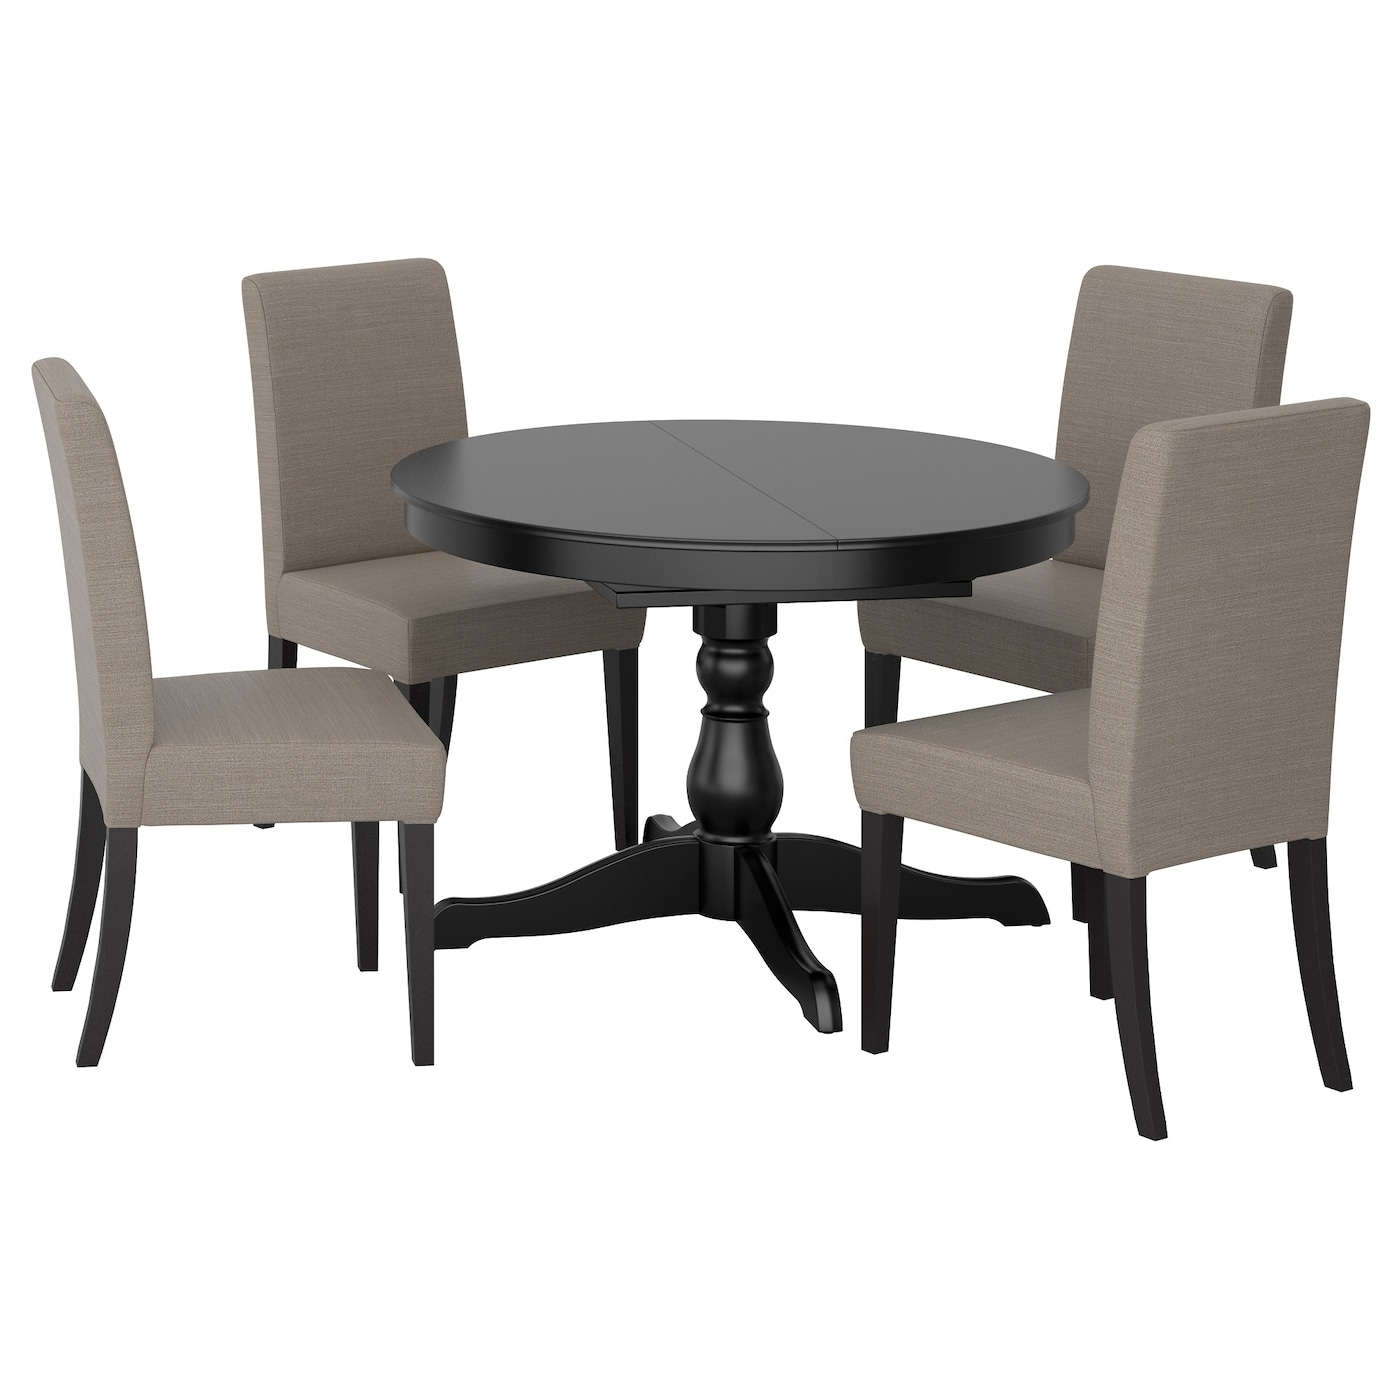 Ingatorp henriksdal table and 4 chairs black nolhaga grey for Ikea dining table and chairs set